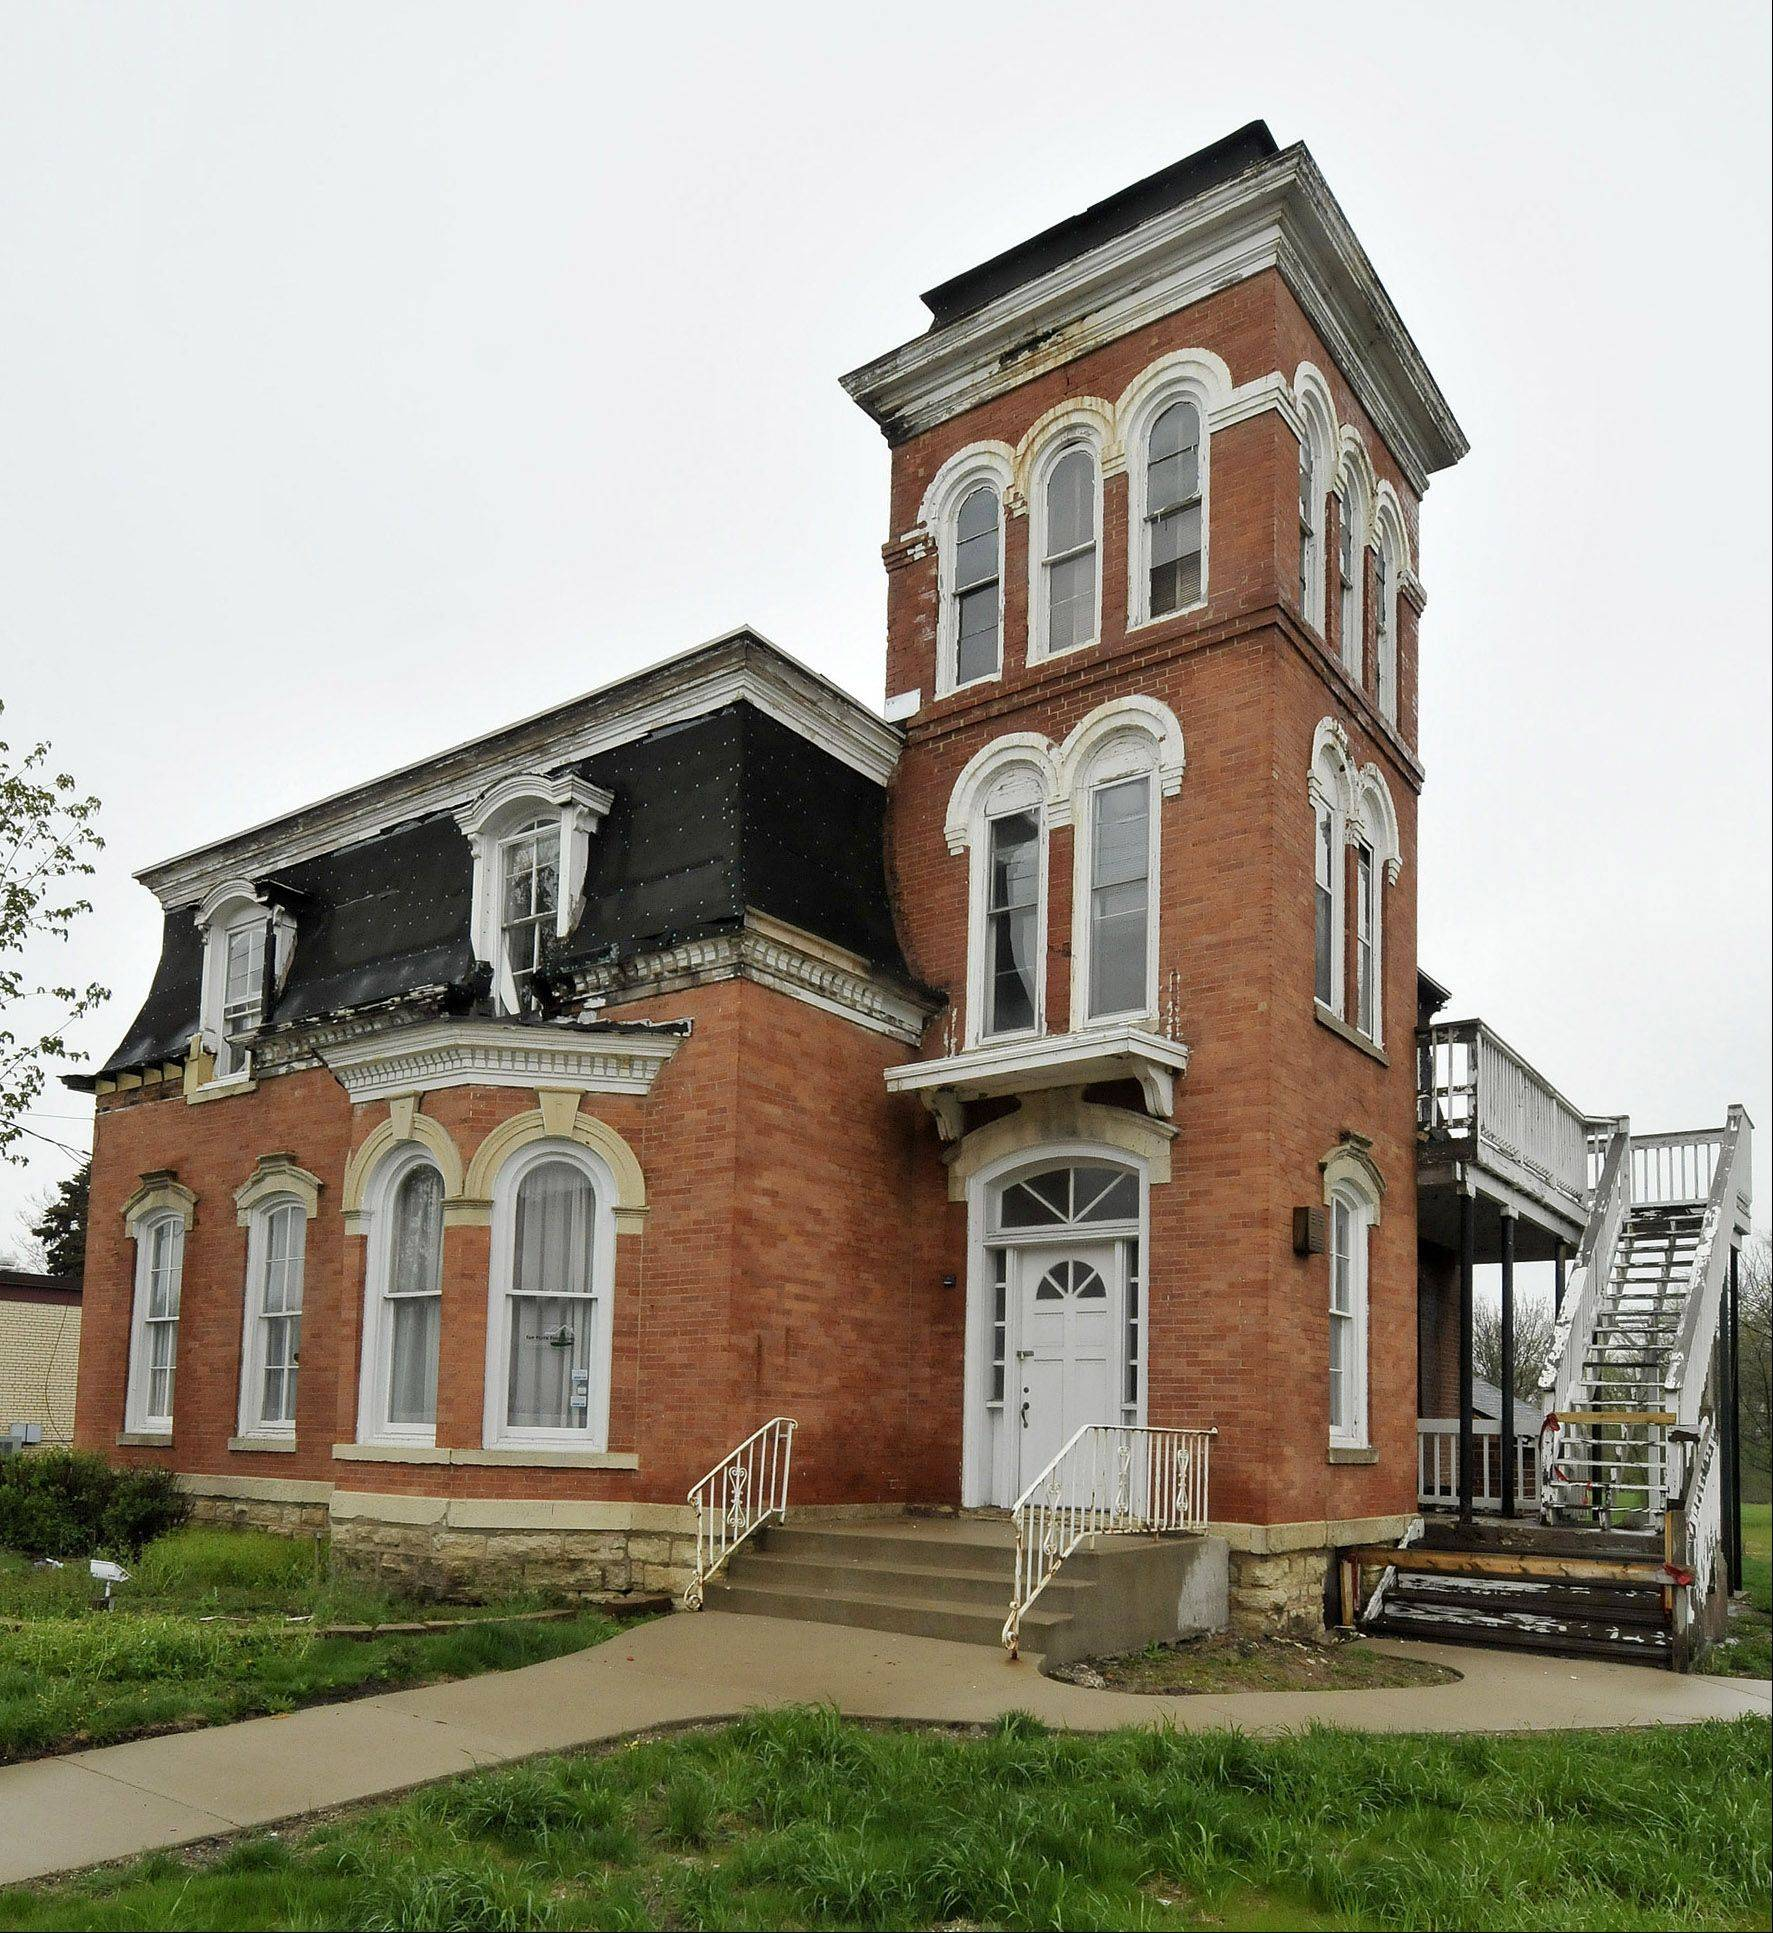 Work on historic West Chicago house delayed